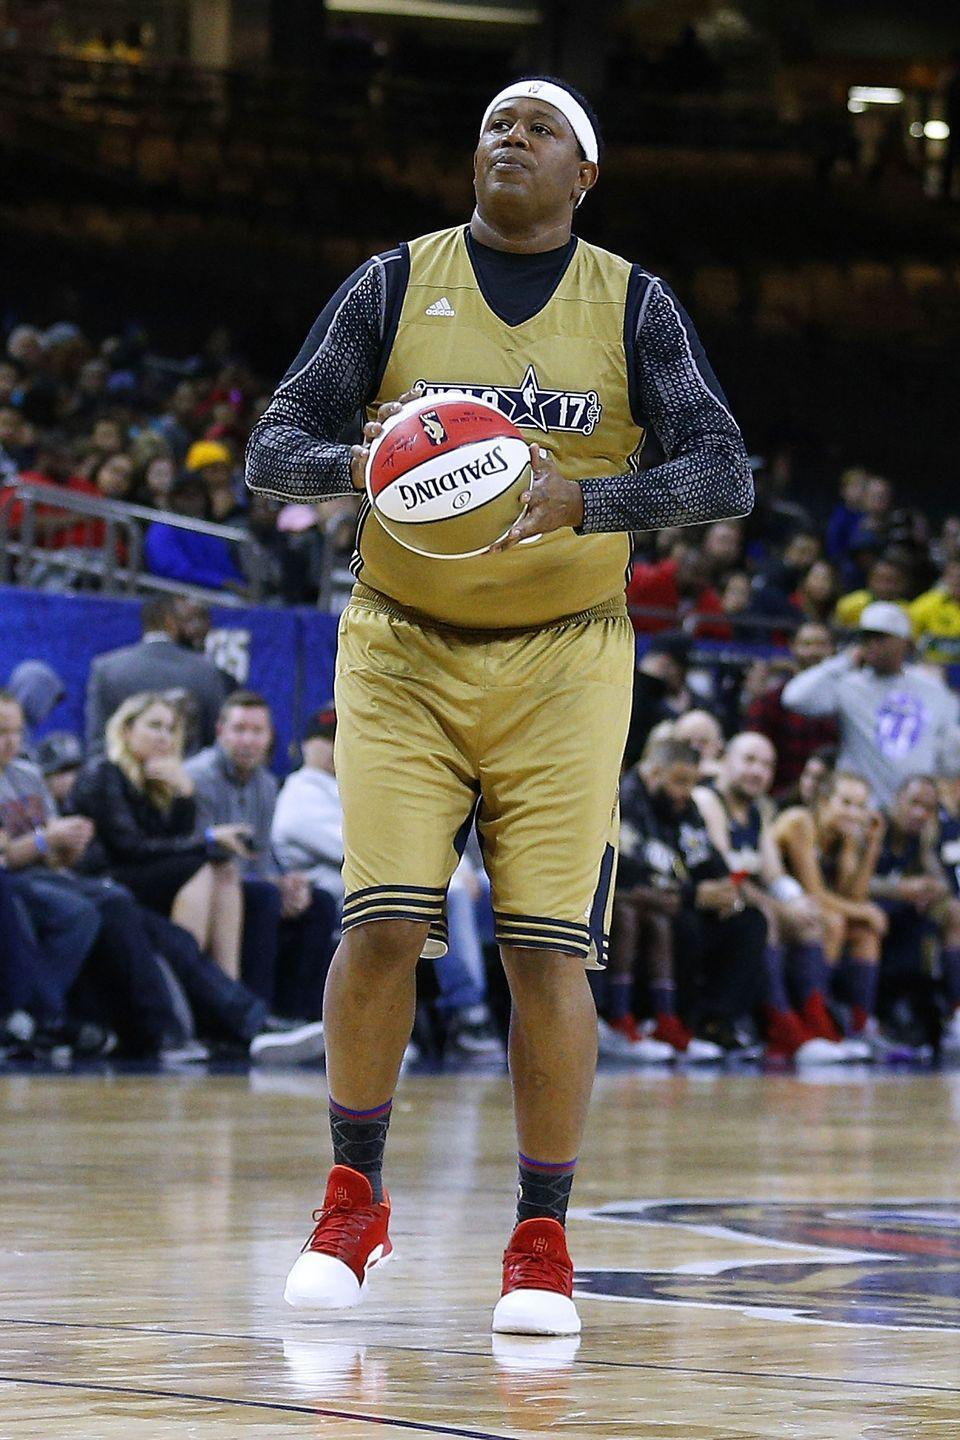 """<p>Before his successful rapping career, Master P attended the University of Houston on an athletic scholarship. He played on the <a href=""""https://www.complex.com/sports/2015/08/master-p-nba-career-oral-history"""" rel=""""nofollow noopener"""" target=""""_blank"""" data-ylk=""""slk:college's basketball team until a knee injury"""" class=""""link rapid-noclick-resp"""">college's basketball team until a knee injury</a> caused him to end his promising career. </p>"""